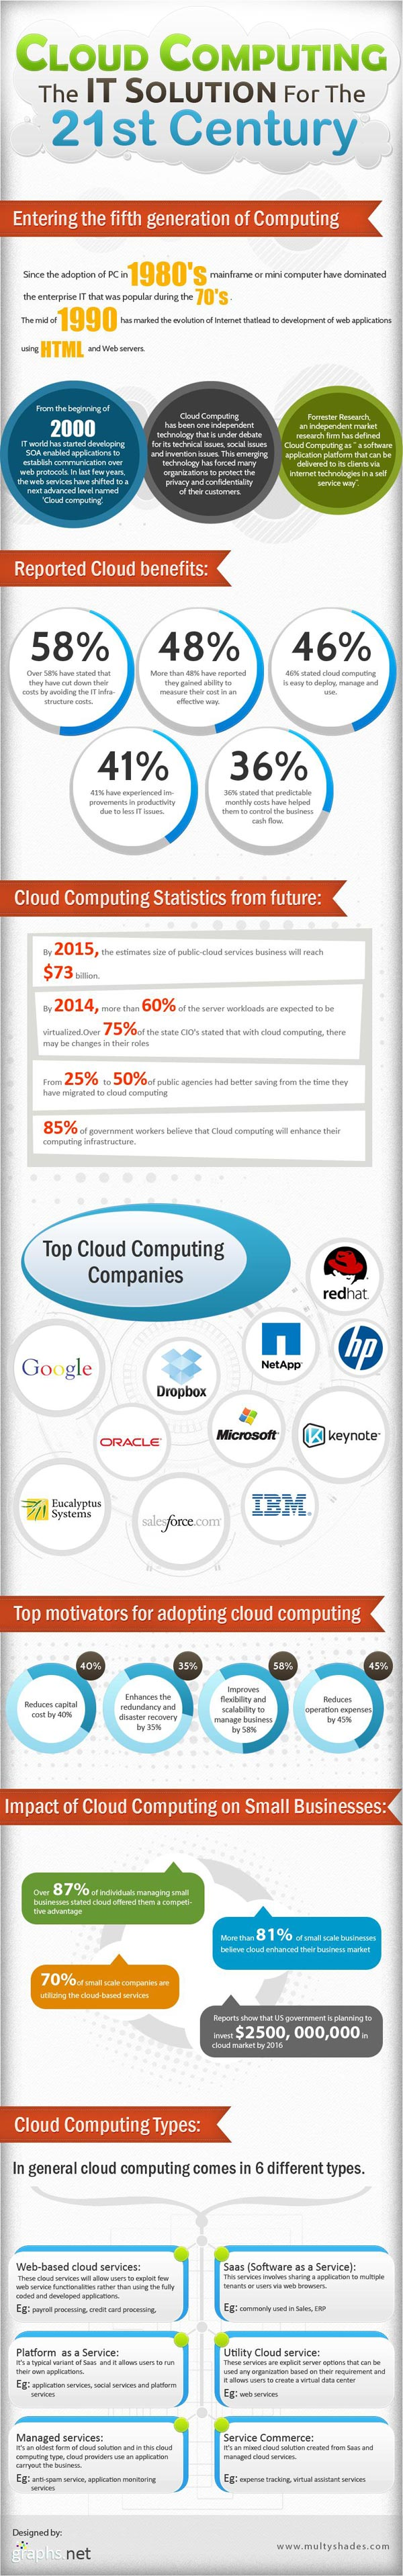 Cloud-computing-the-it-solution-for-the-21st-century.jpg